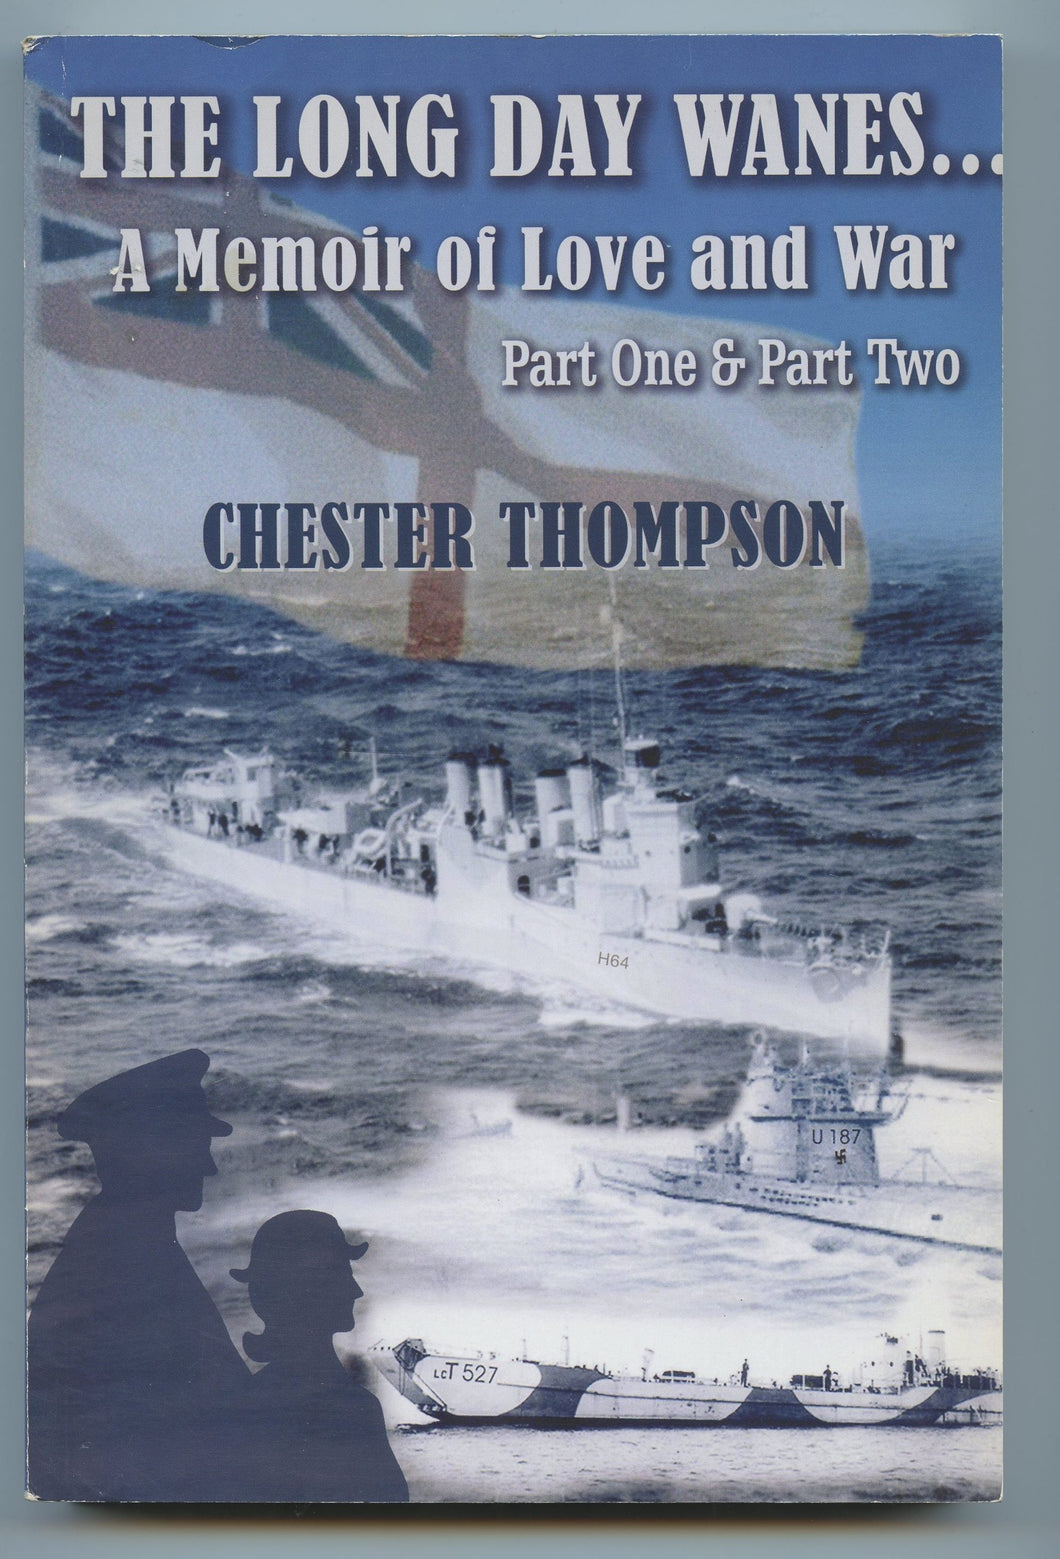 The Long Day Wanes ... A Memoir of Love and War. Part One & Part Two